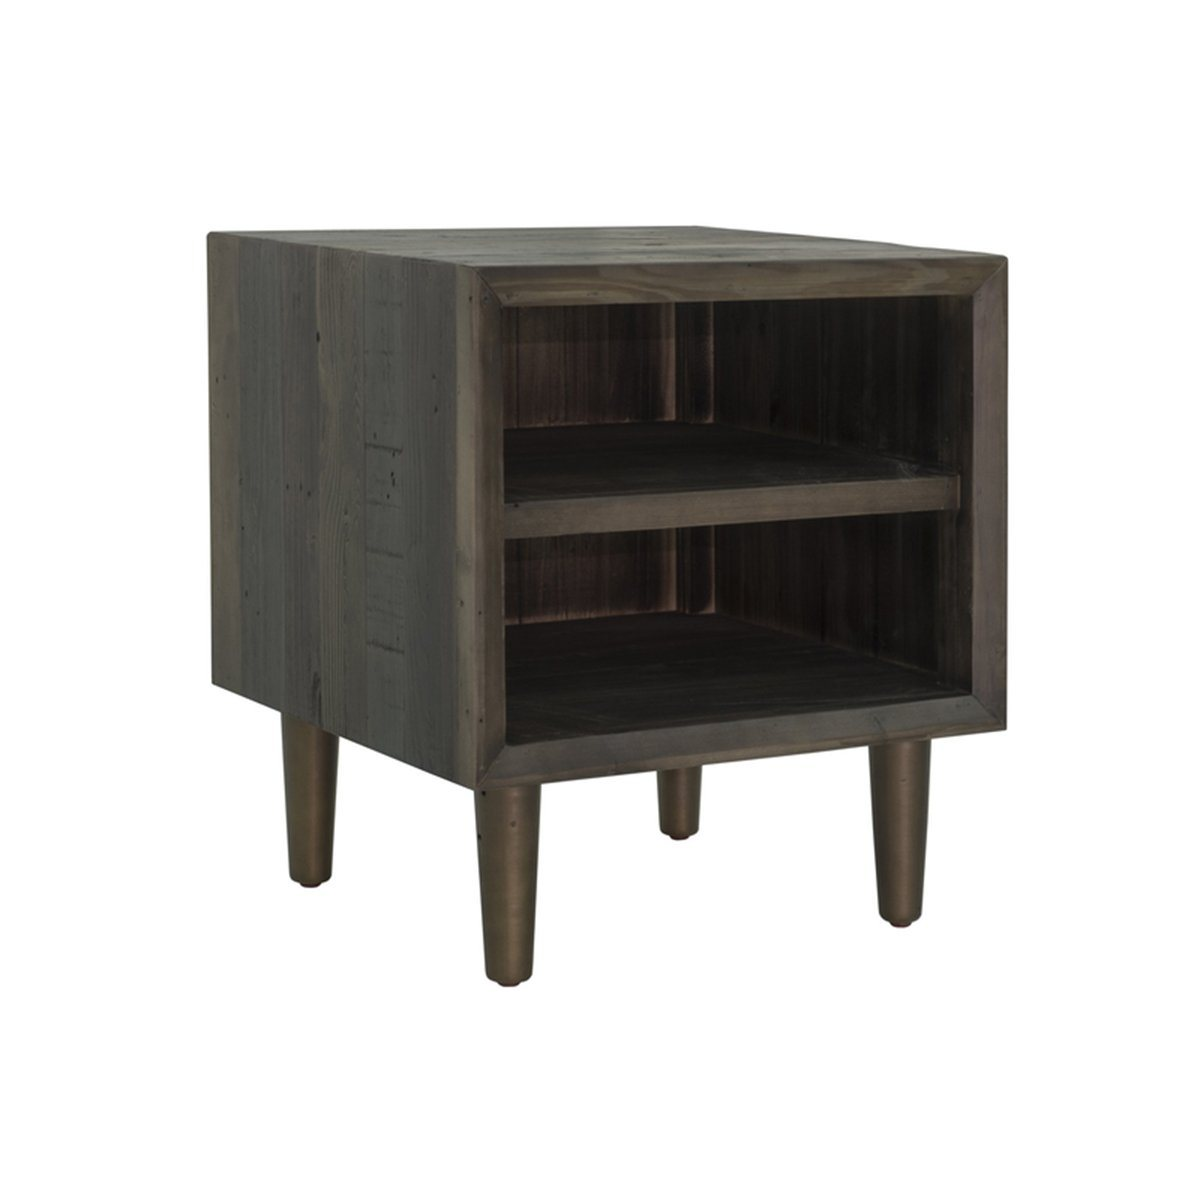 MERCHANT END TABLE - SMOKED GREY - Showhome Furniture